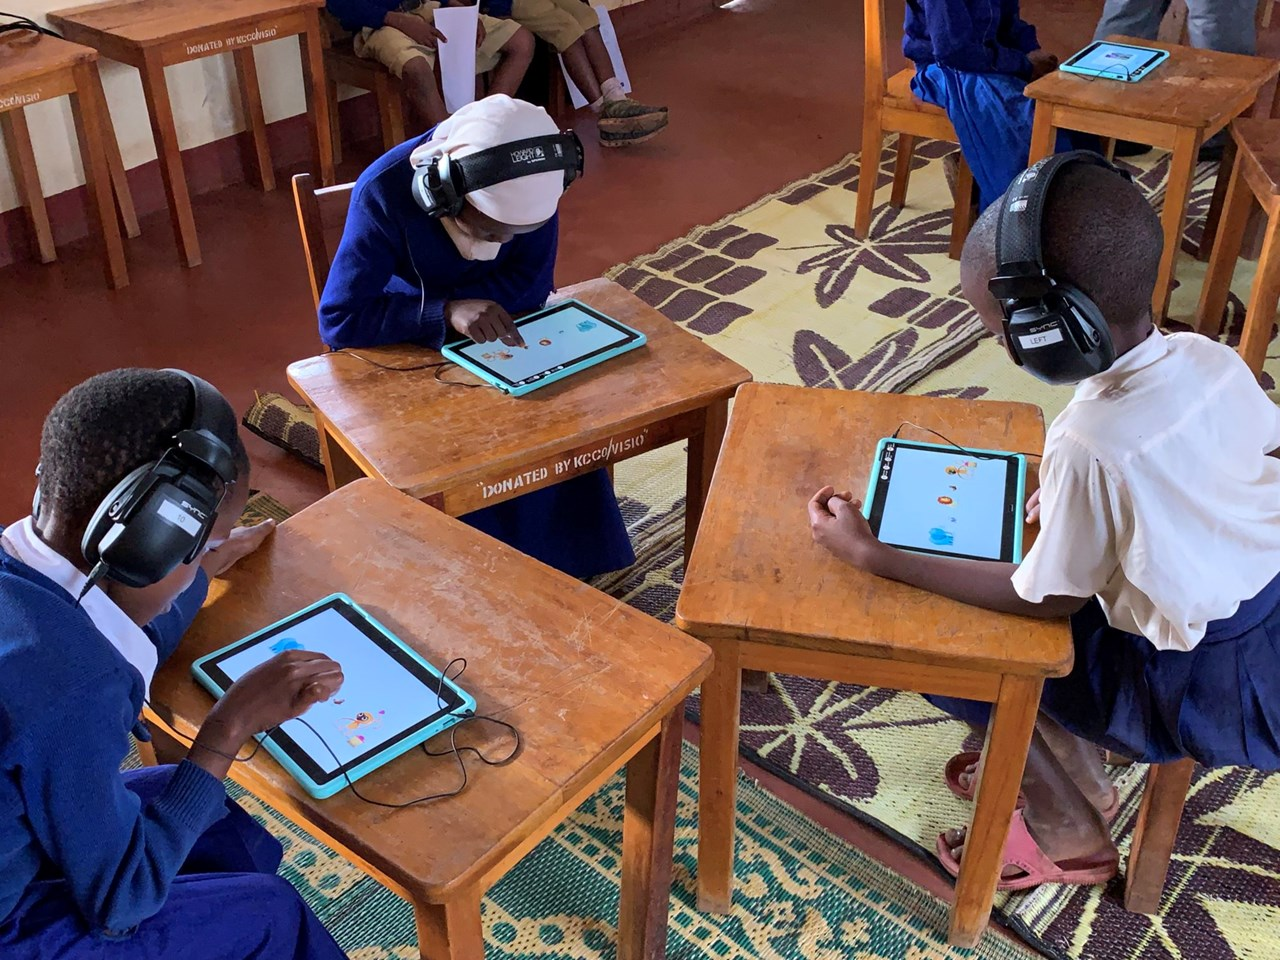 The project 'I hear you', are carried out in Tanzania. Here, researchers are using games technology and adapted headphones to screen people for hearing problems. Photo: Tone Øderud/SINTEF: